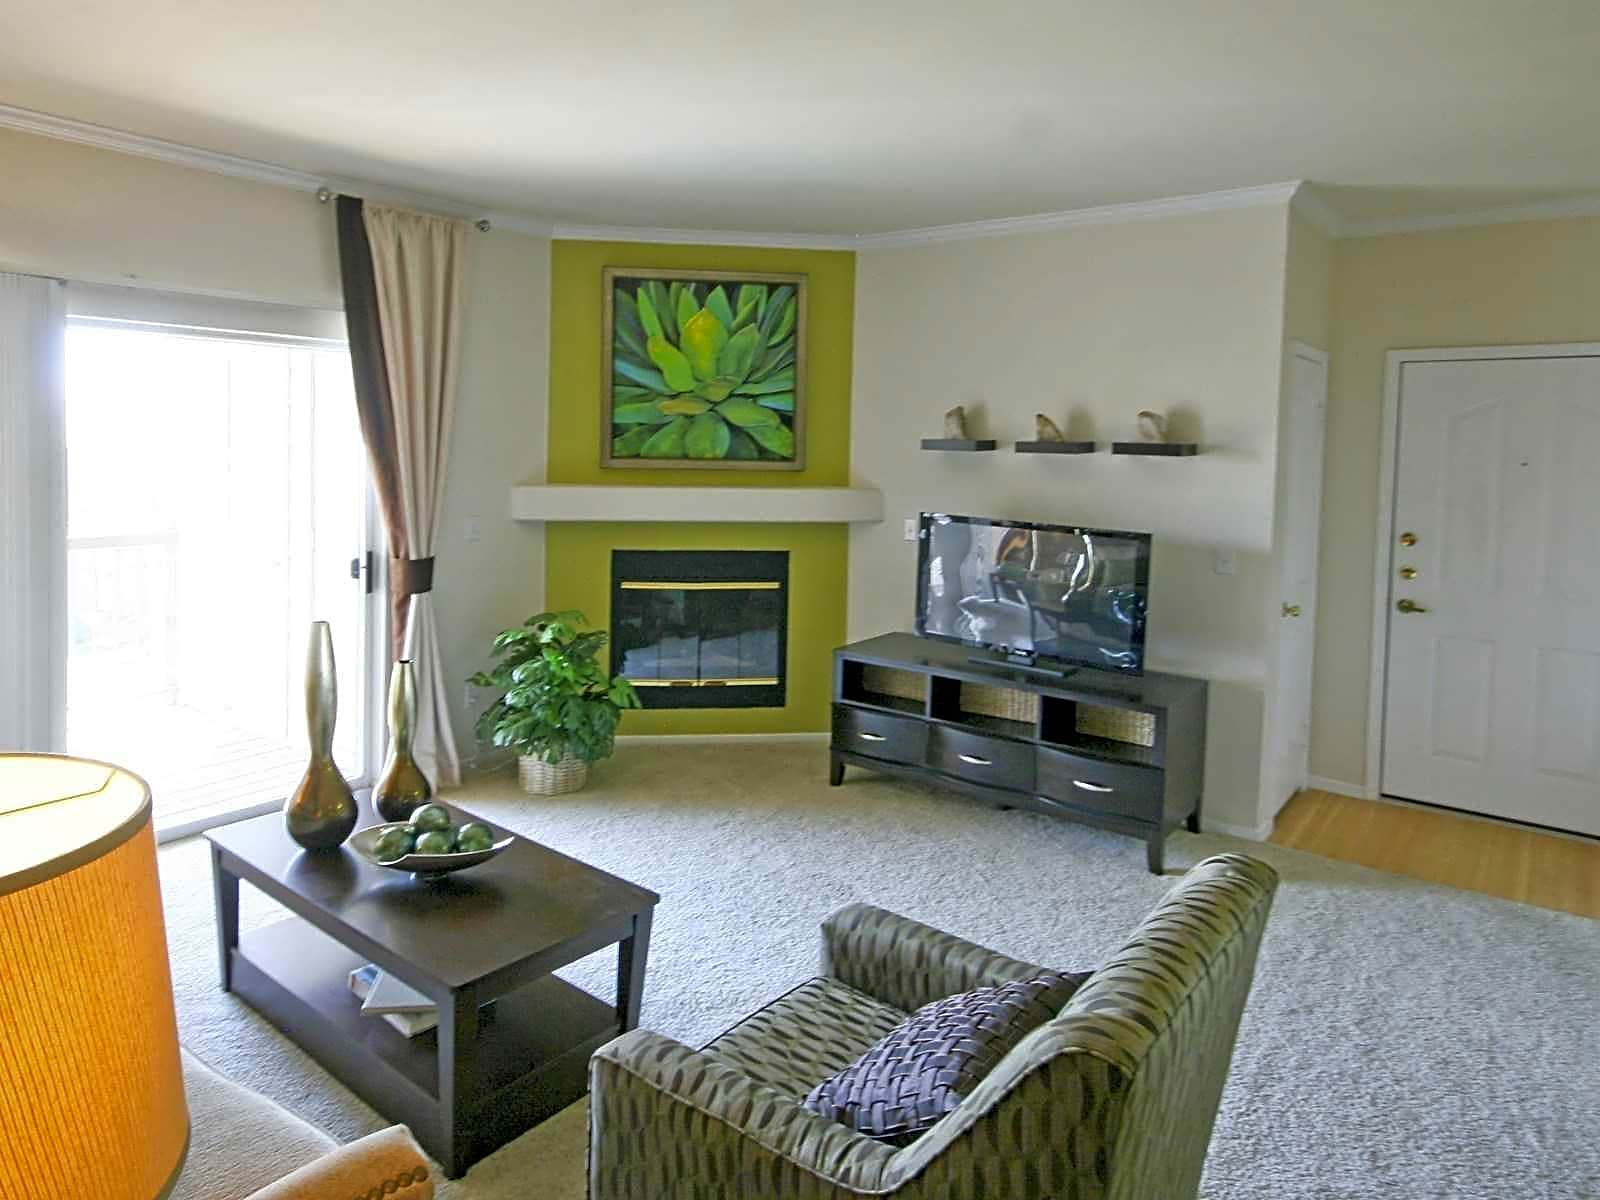 Interior-Living Room